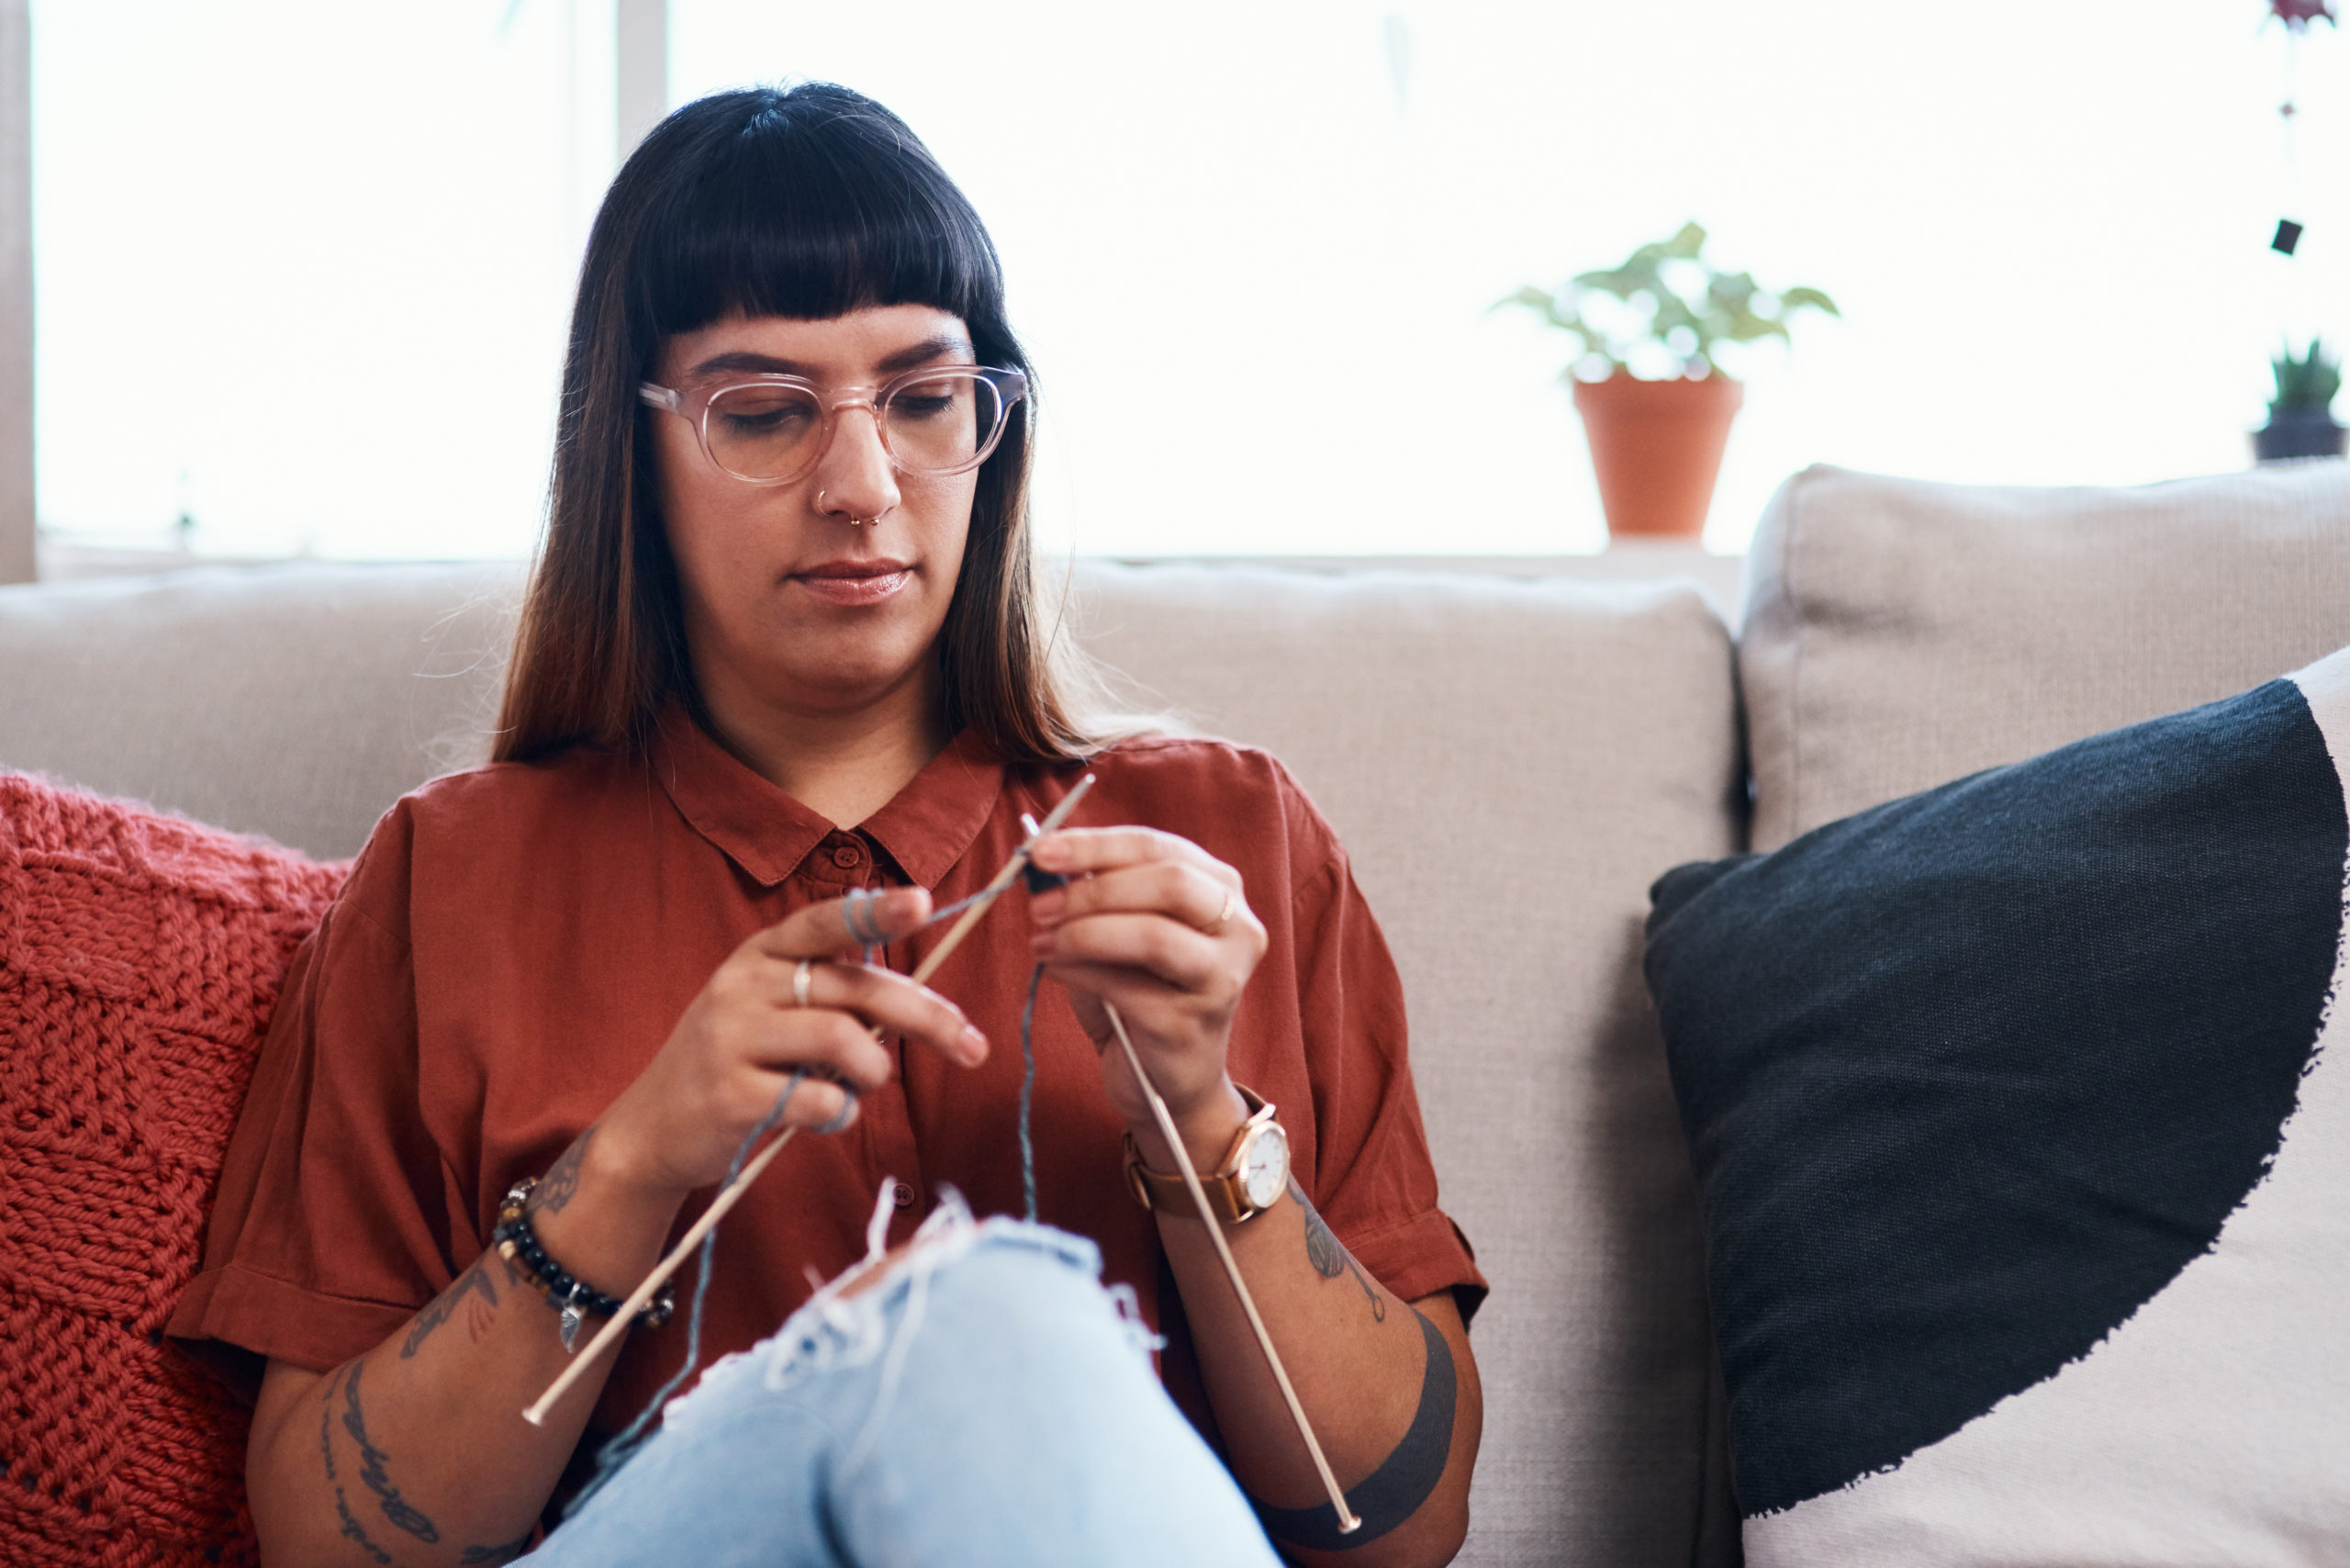 Kingstowne craft stores offer knitting